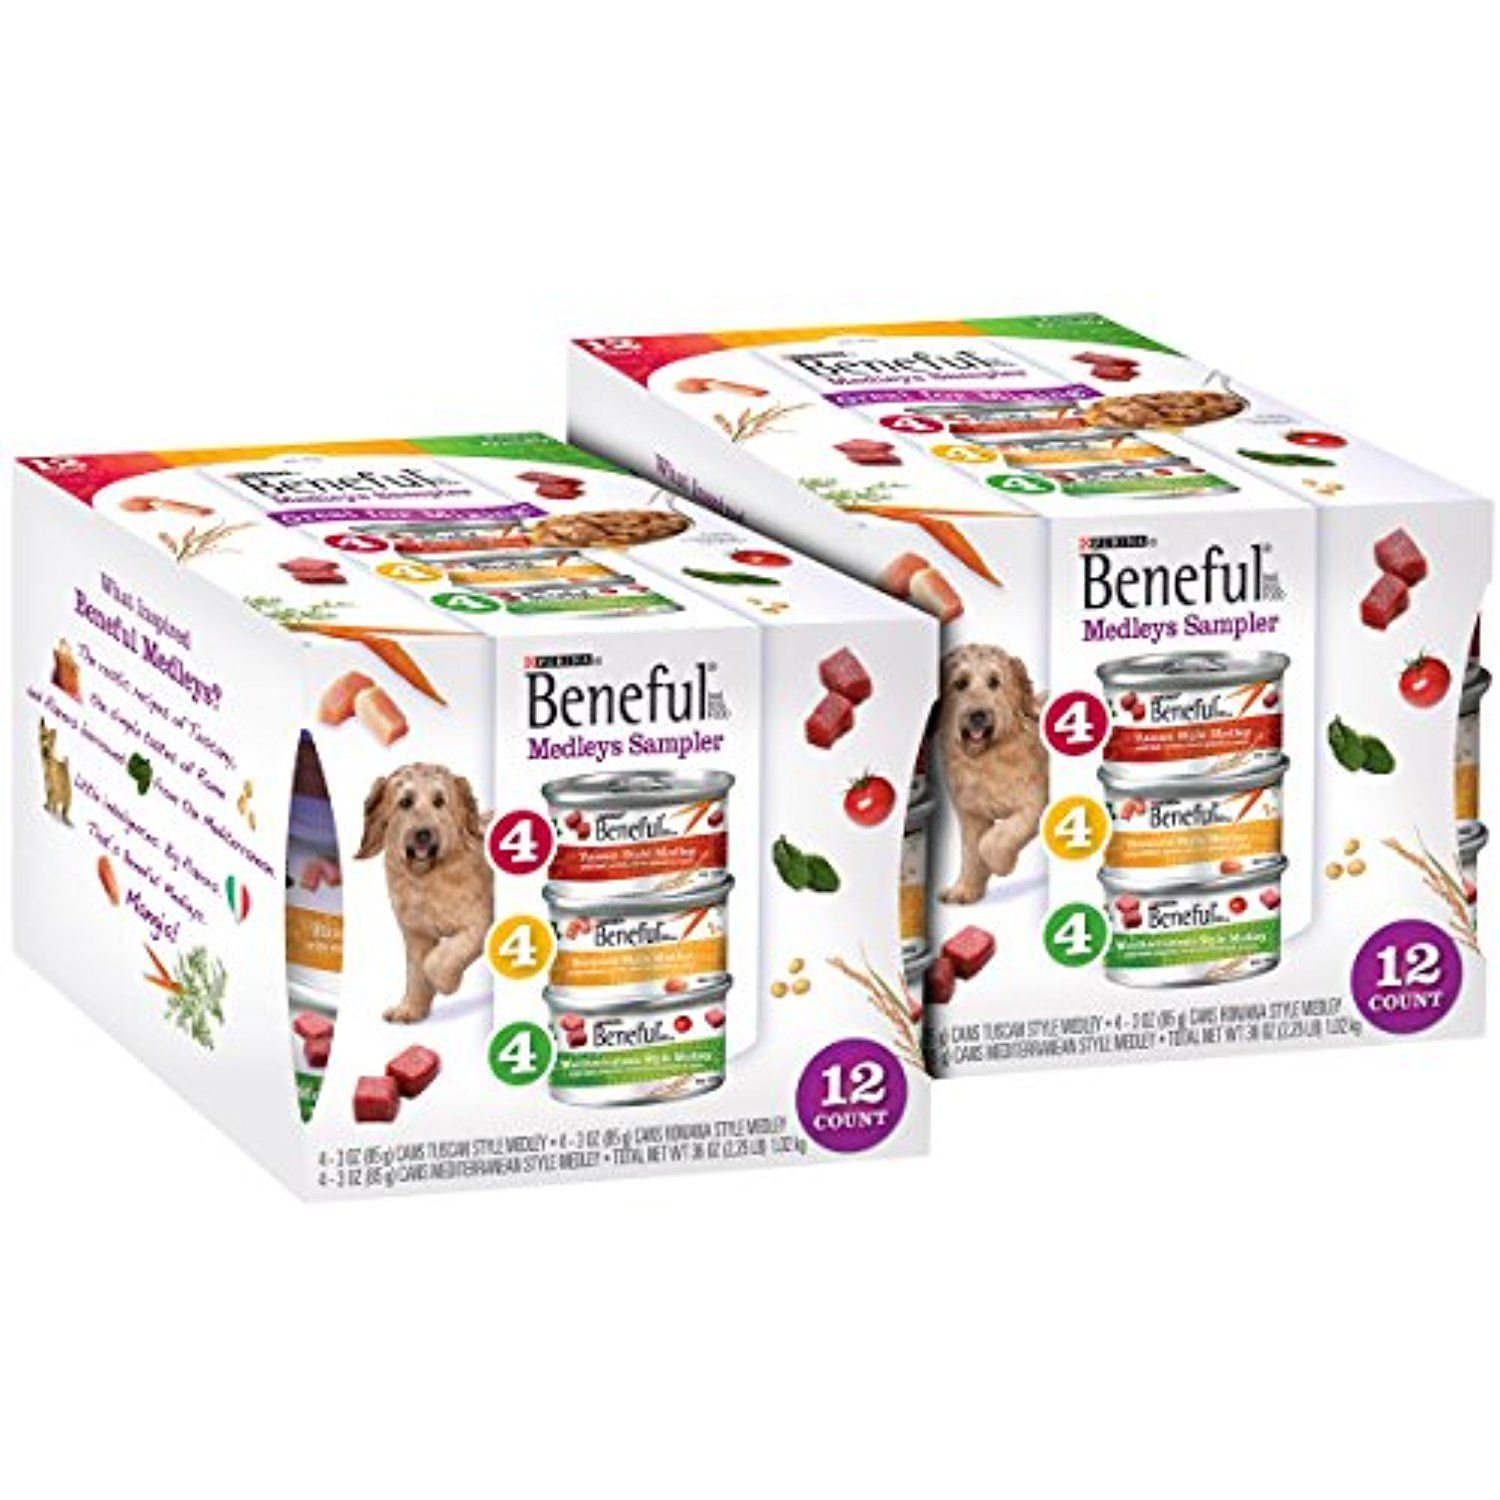 Purina Beneful Medleys Variety Pack Dog Food 12 3 Oz Cans The